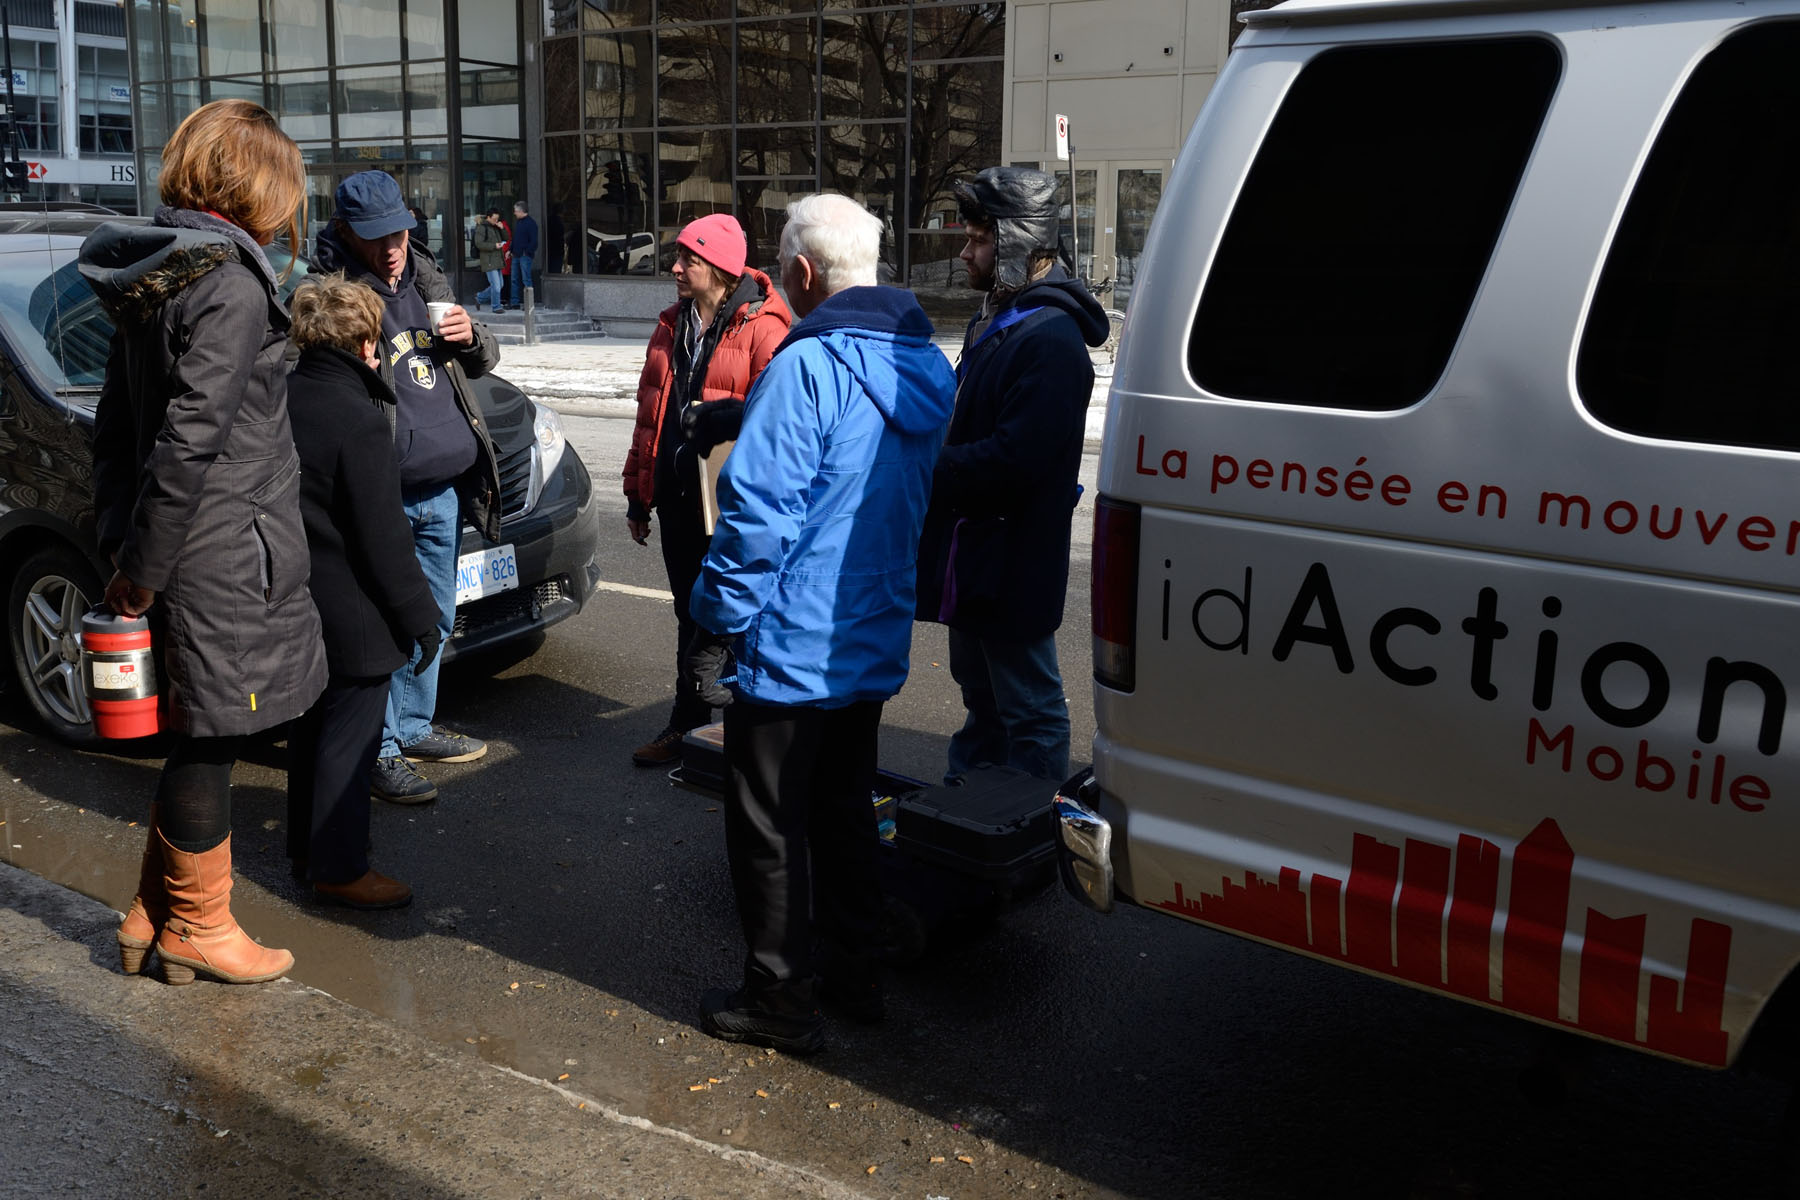 Their Excellencies were invited to hop on the idAction Mobile, a citizen education program caravan for homeless inidividuals living in Montréal.